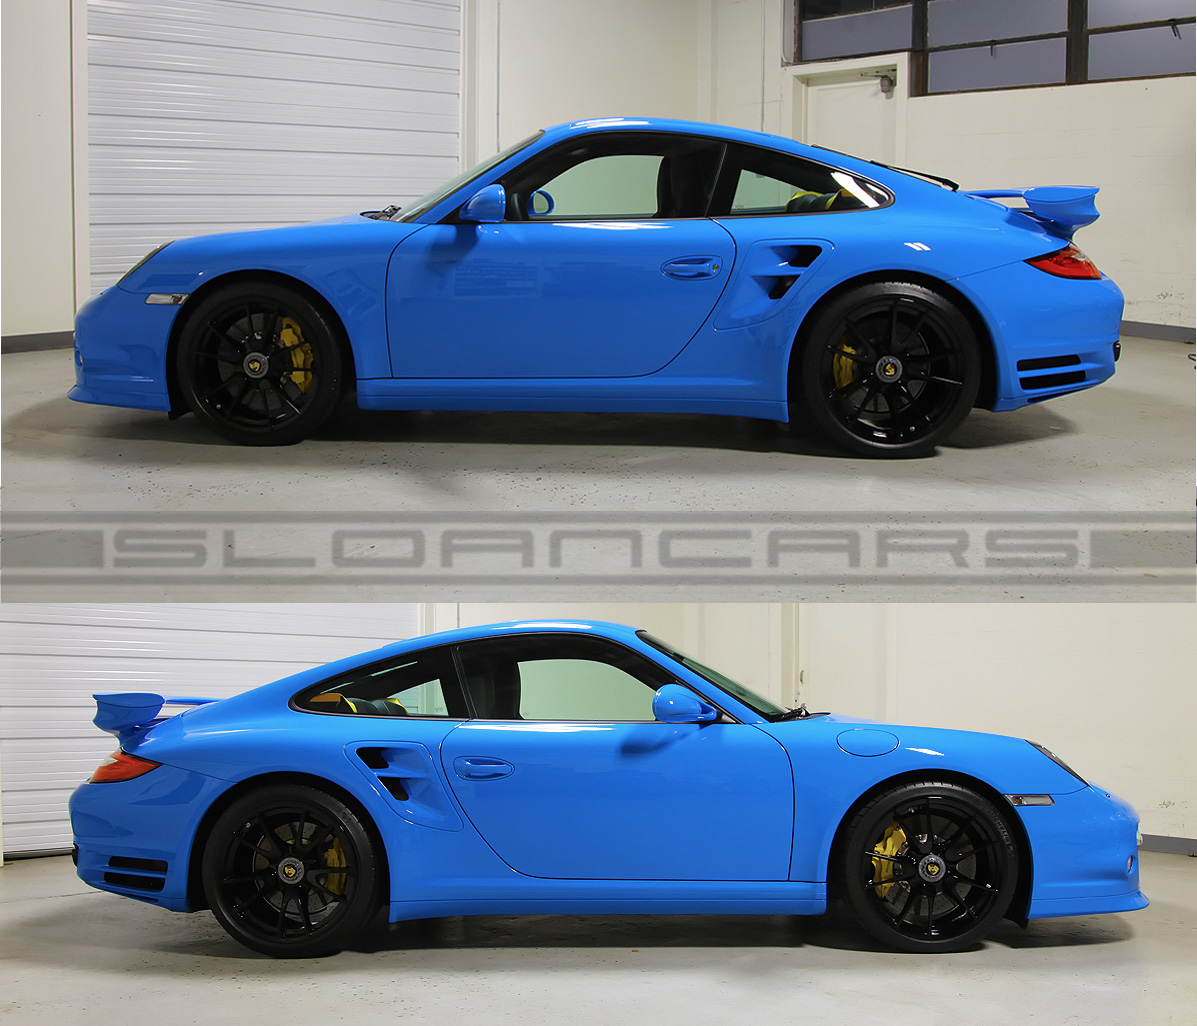 2012 Porsche 997 Twin Turbo S Coupe 1,654 Miles